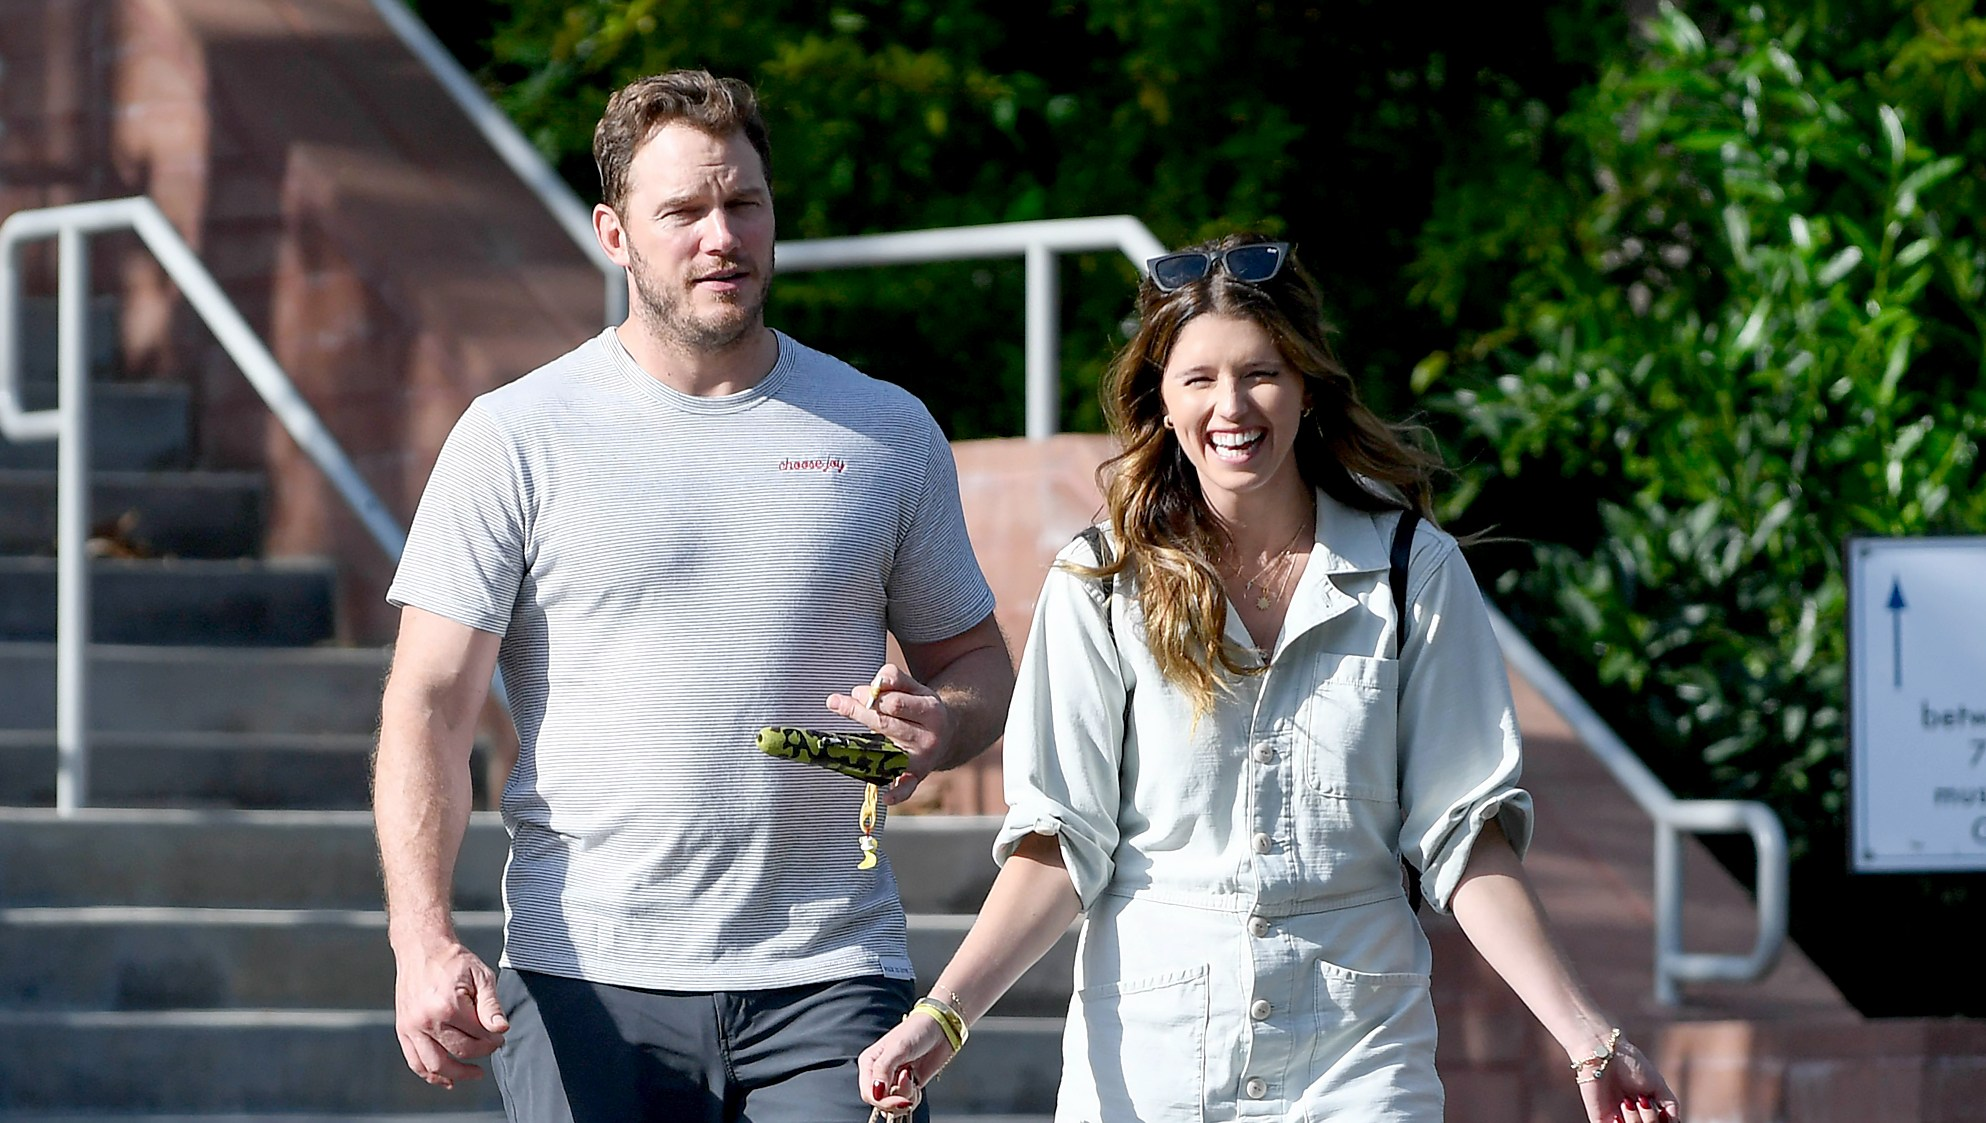 Chris Pratt and Katherine Schwarzenegger Improvise in the Funniest Way to Measure Their New House